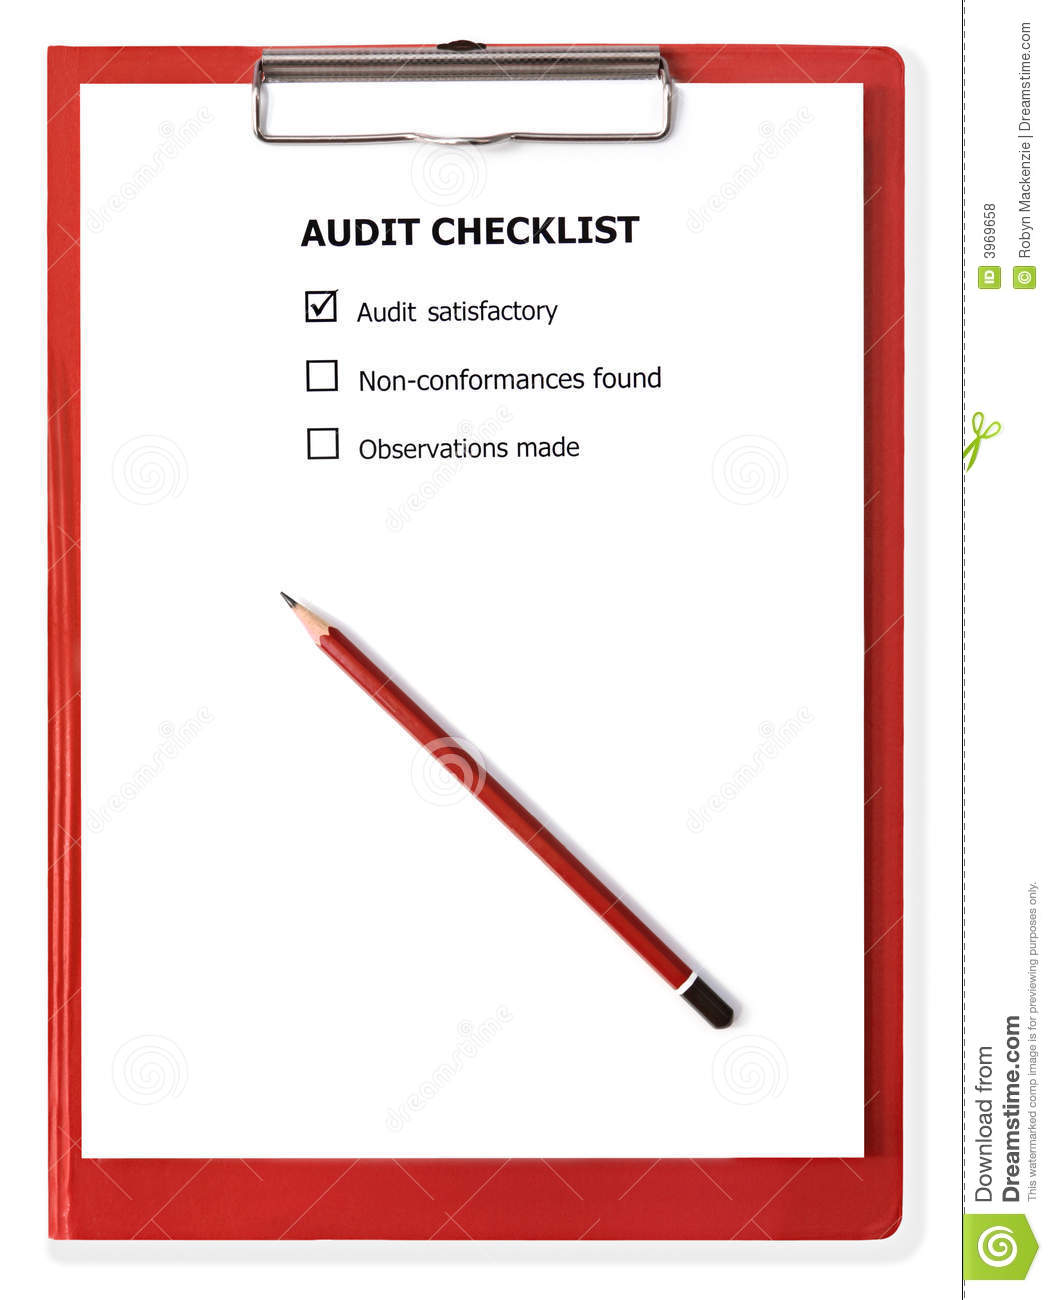 Audit Checklist On Clipboard Royalty Free Stock Photos ...